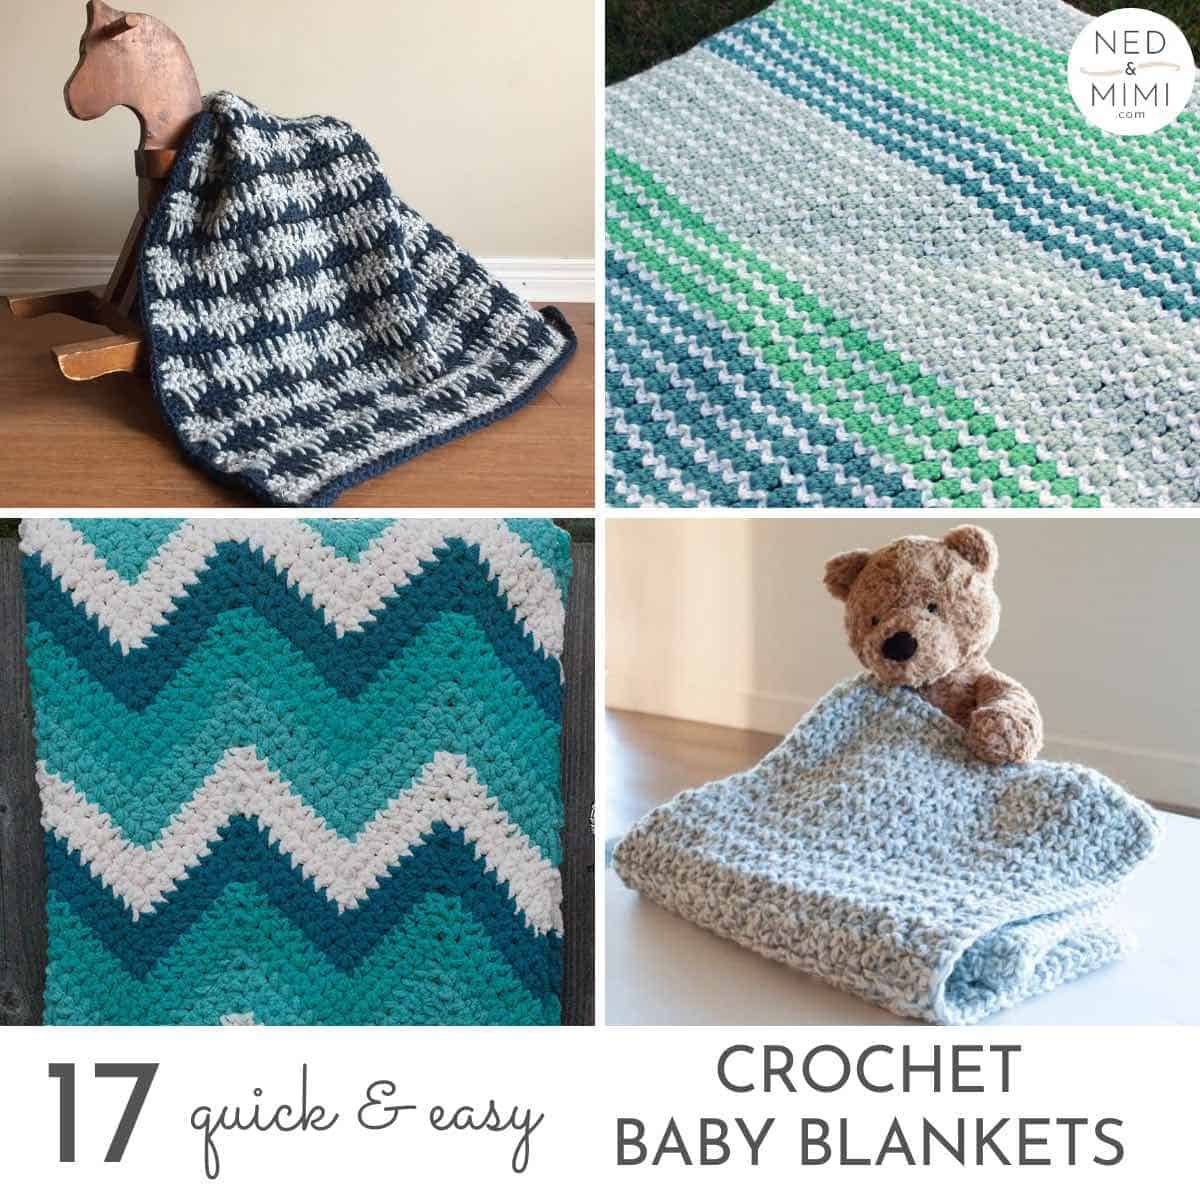 17 Quick Easy Crochet Baby Blanket Patterns Ned Mimi